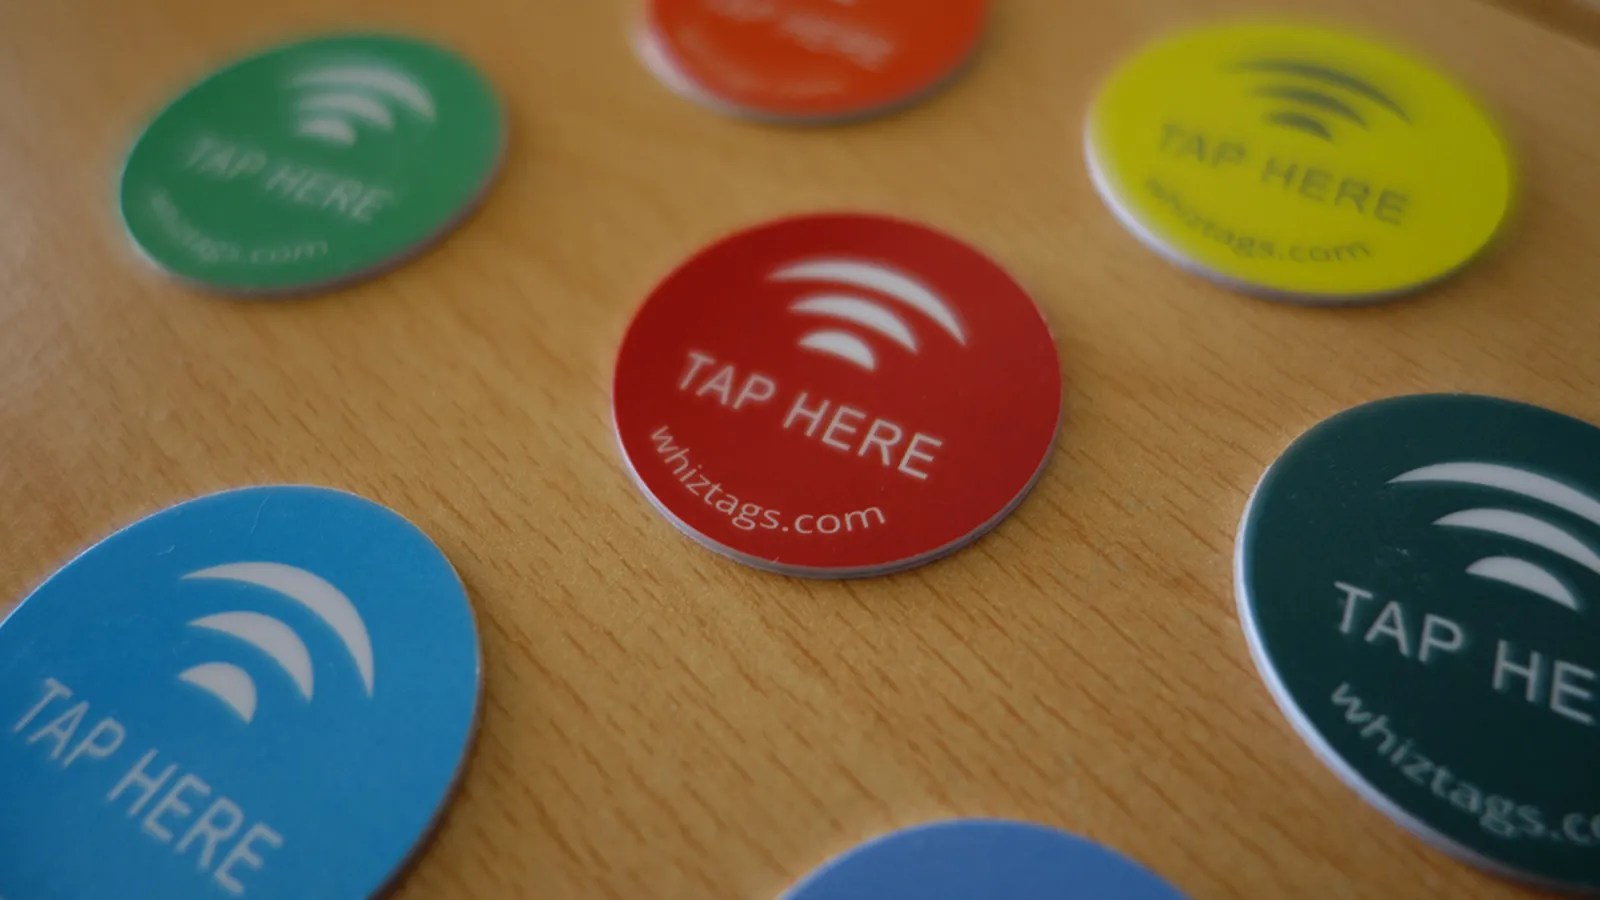 Nfc Tags Share Your Home Wi Fi Easily Using An Nfc Tag Or Qr Code